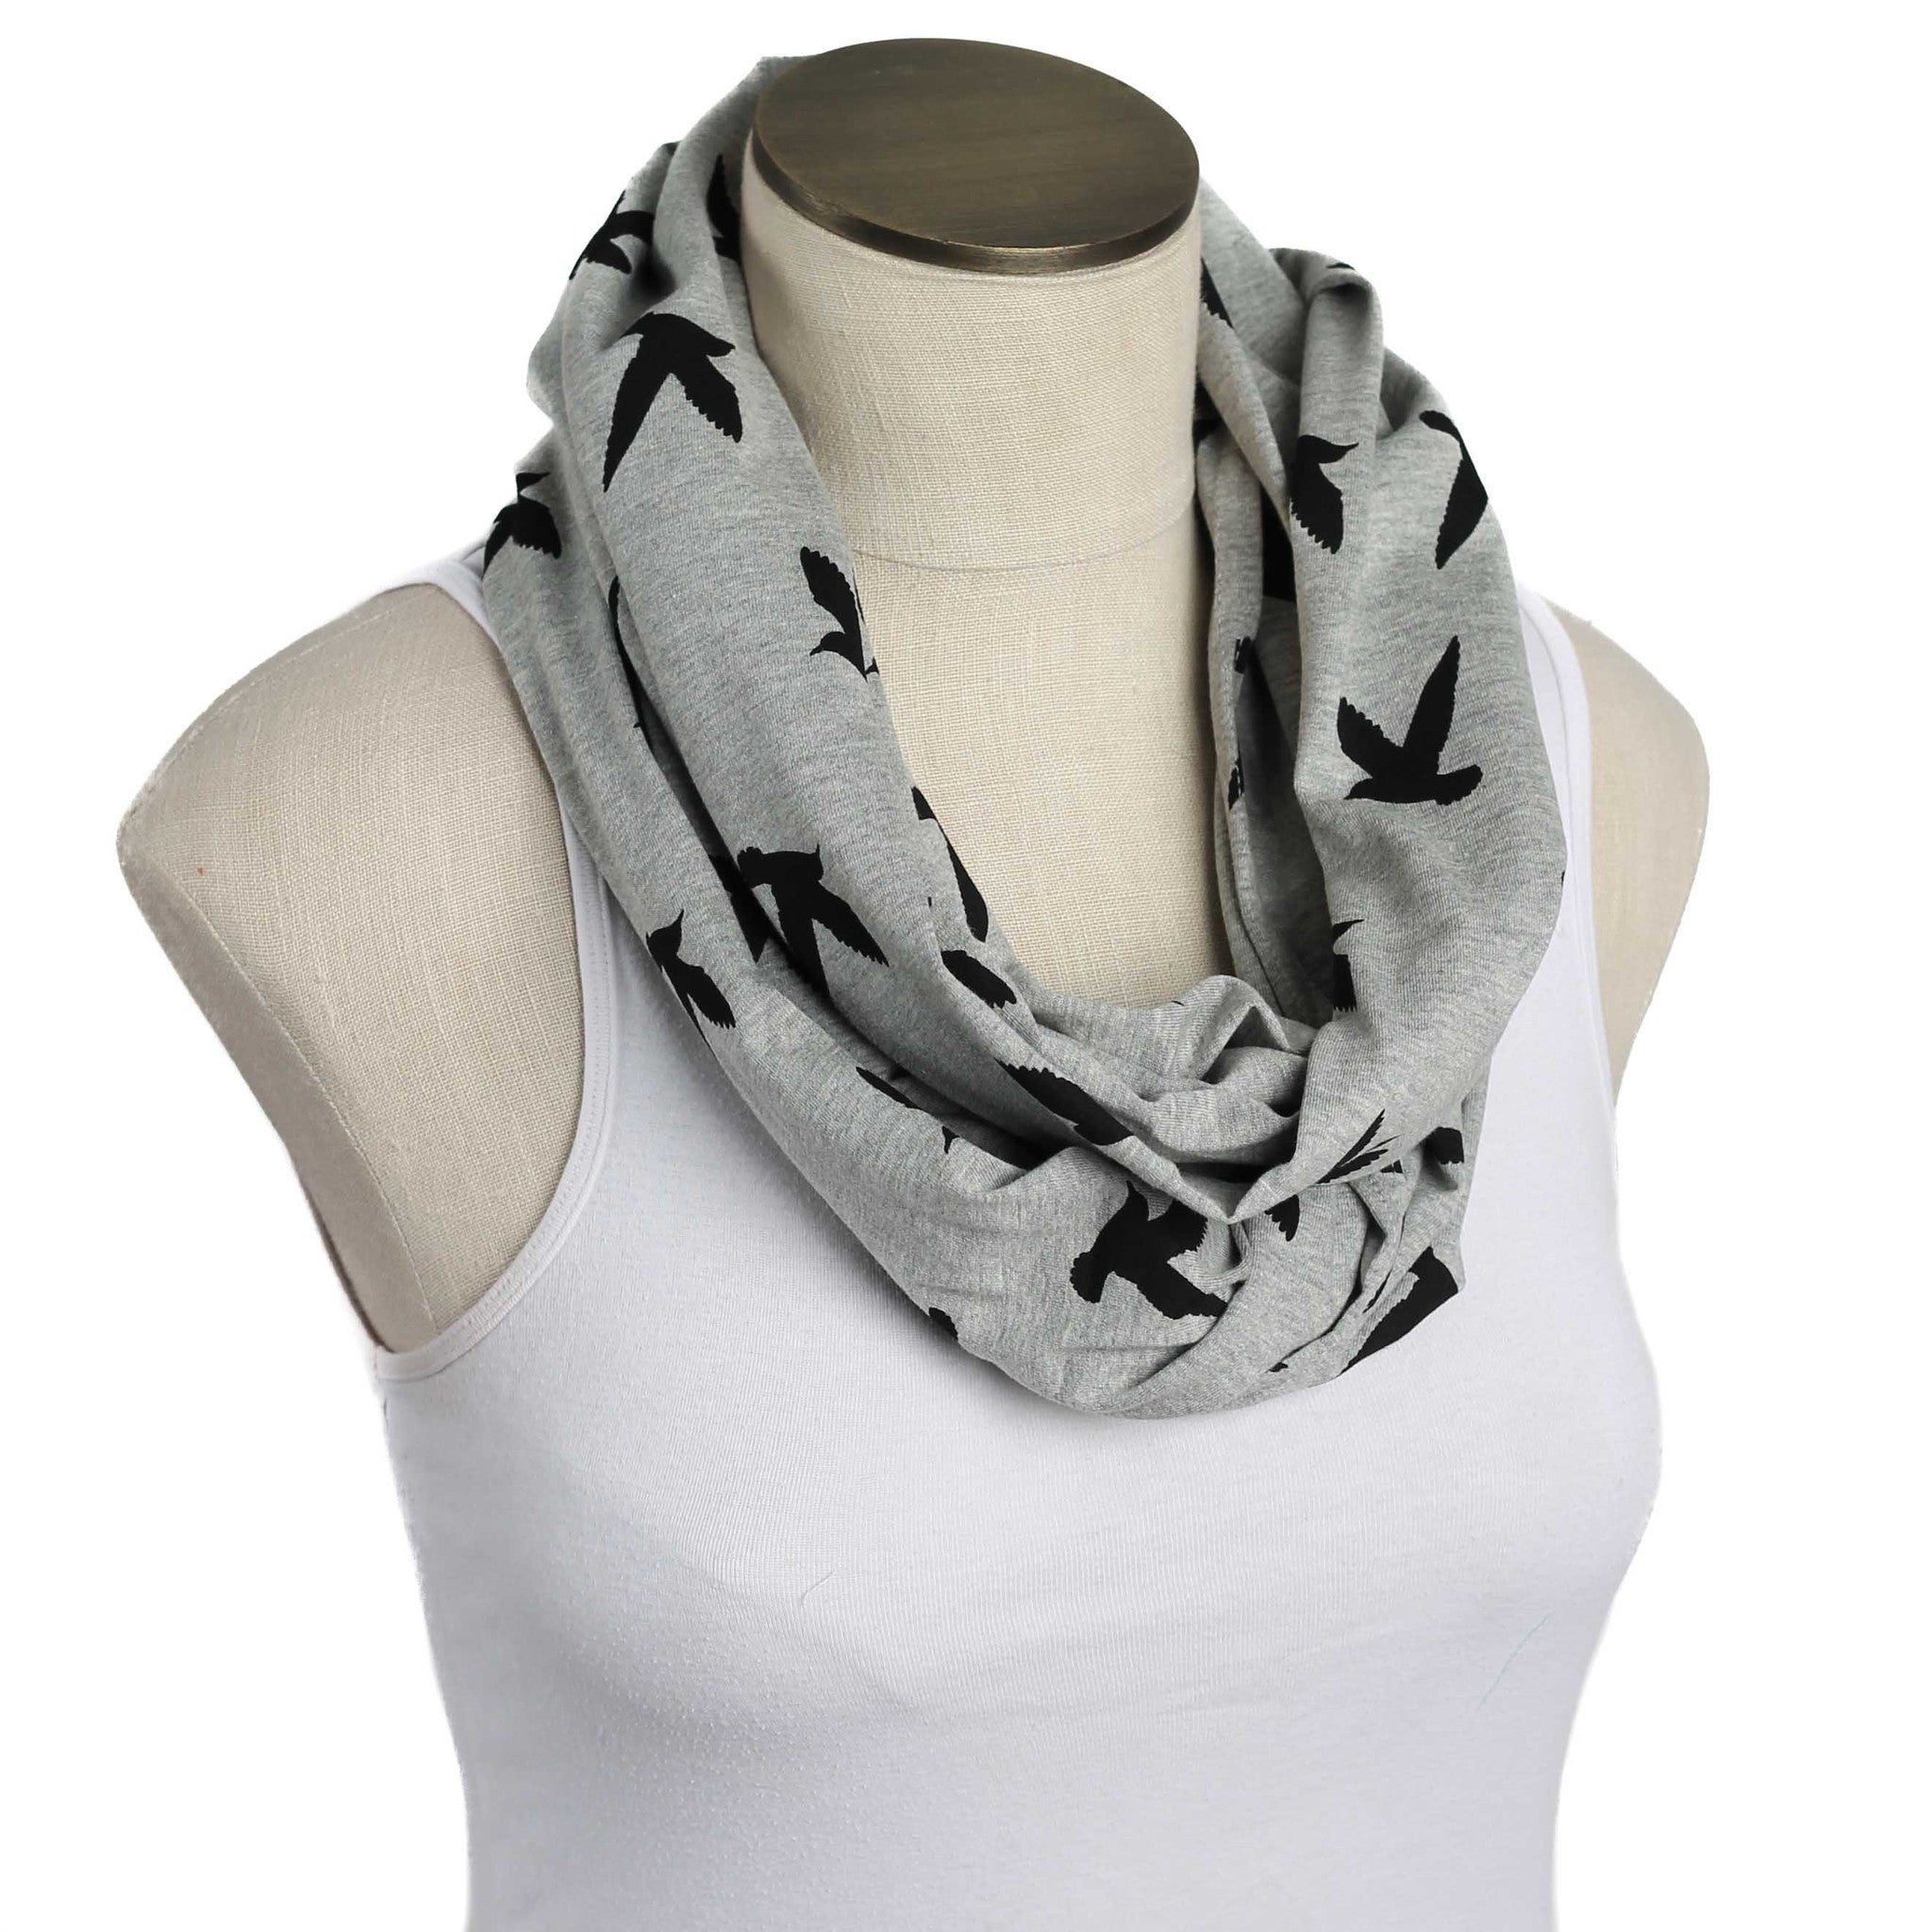 Gray with Black Birds Nursing Scarf